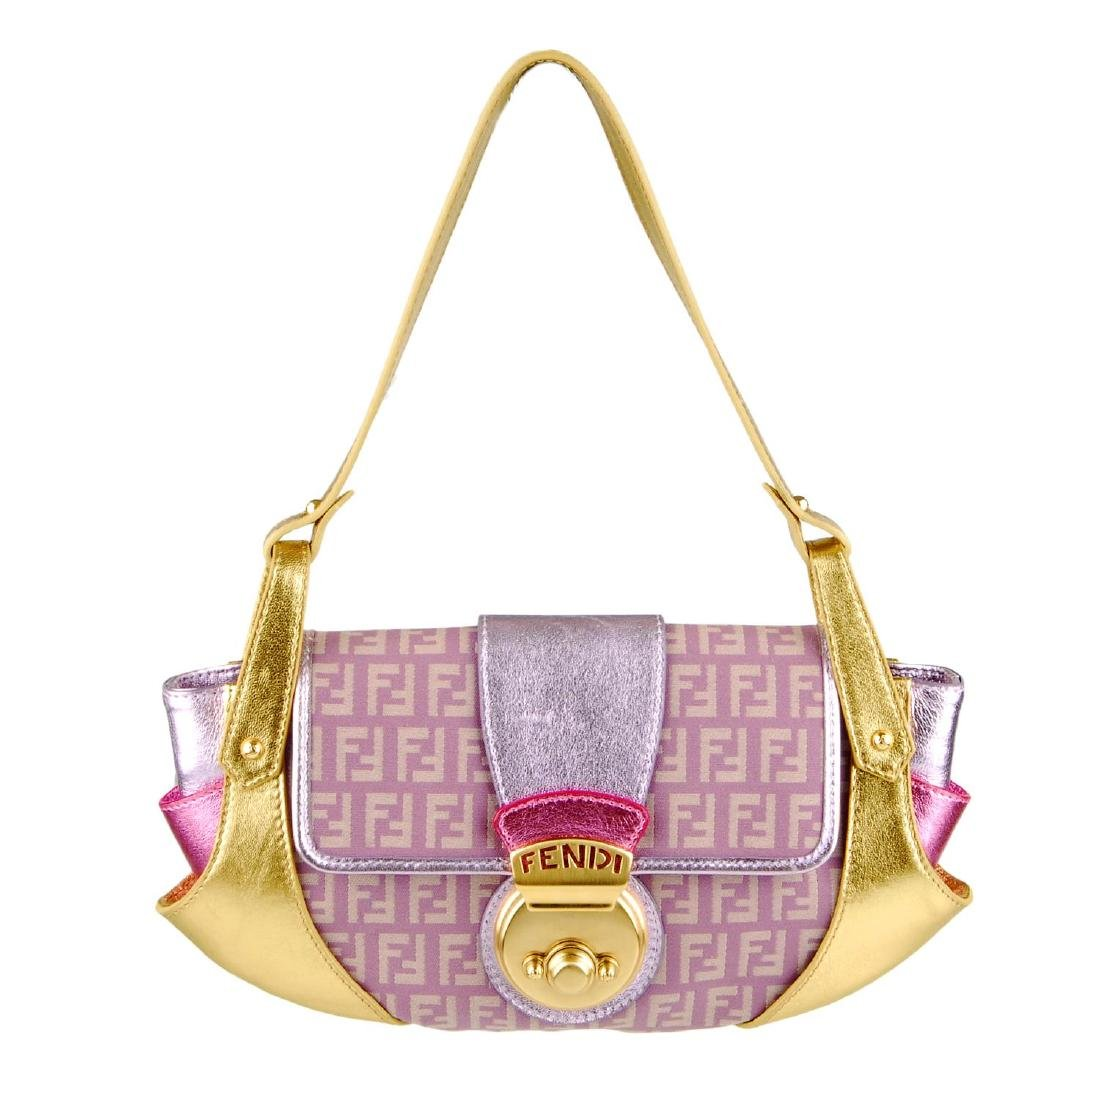 FENDI - a Borsa Tuc baguette handbag. Crafted from